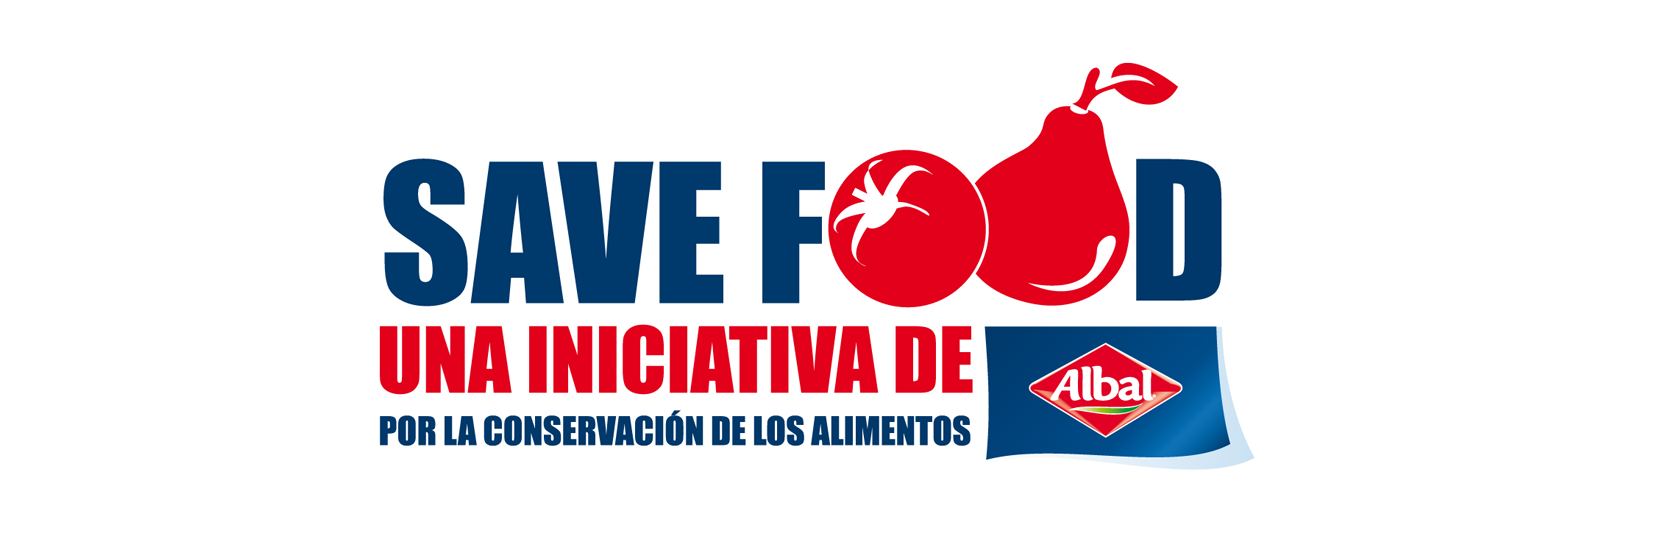 Iniciativa Save-Food de Albal®